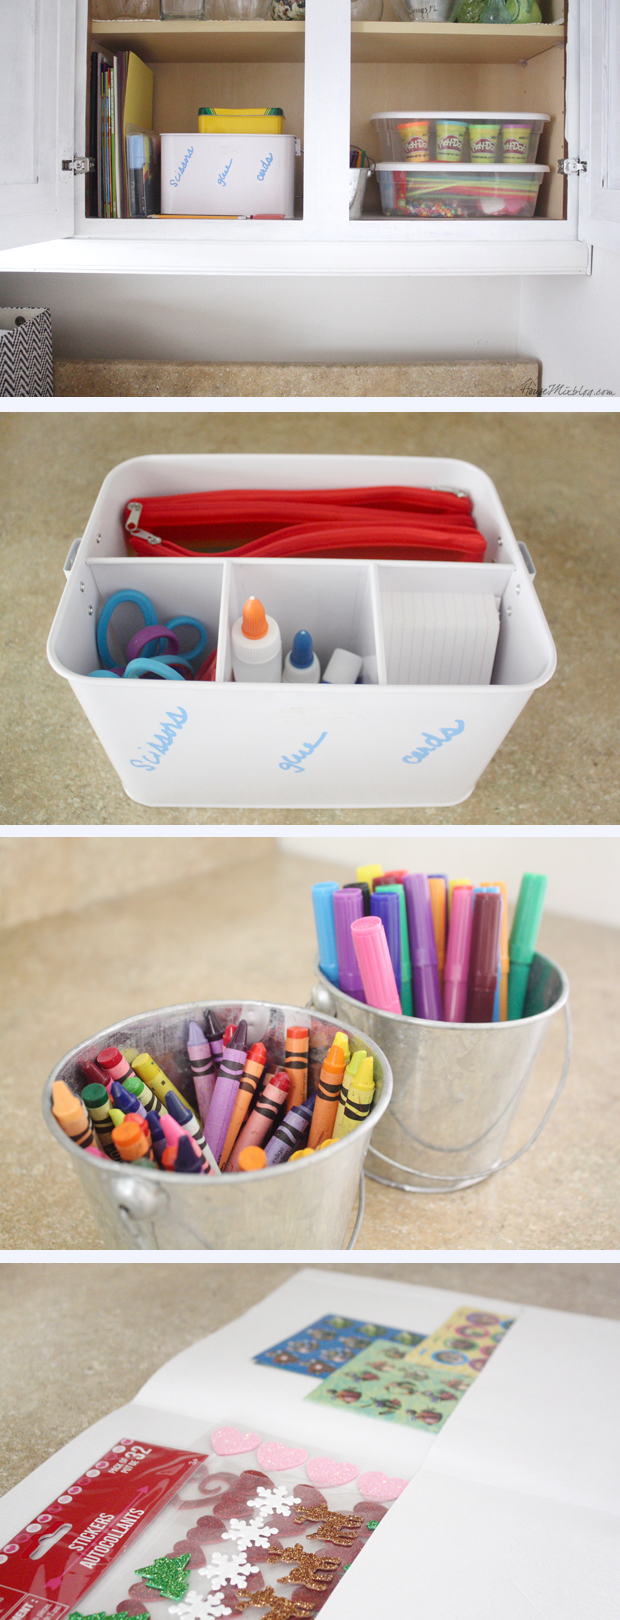 Kid art supplies and craft space organization in cabinet